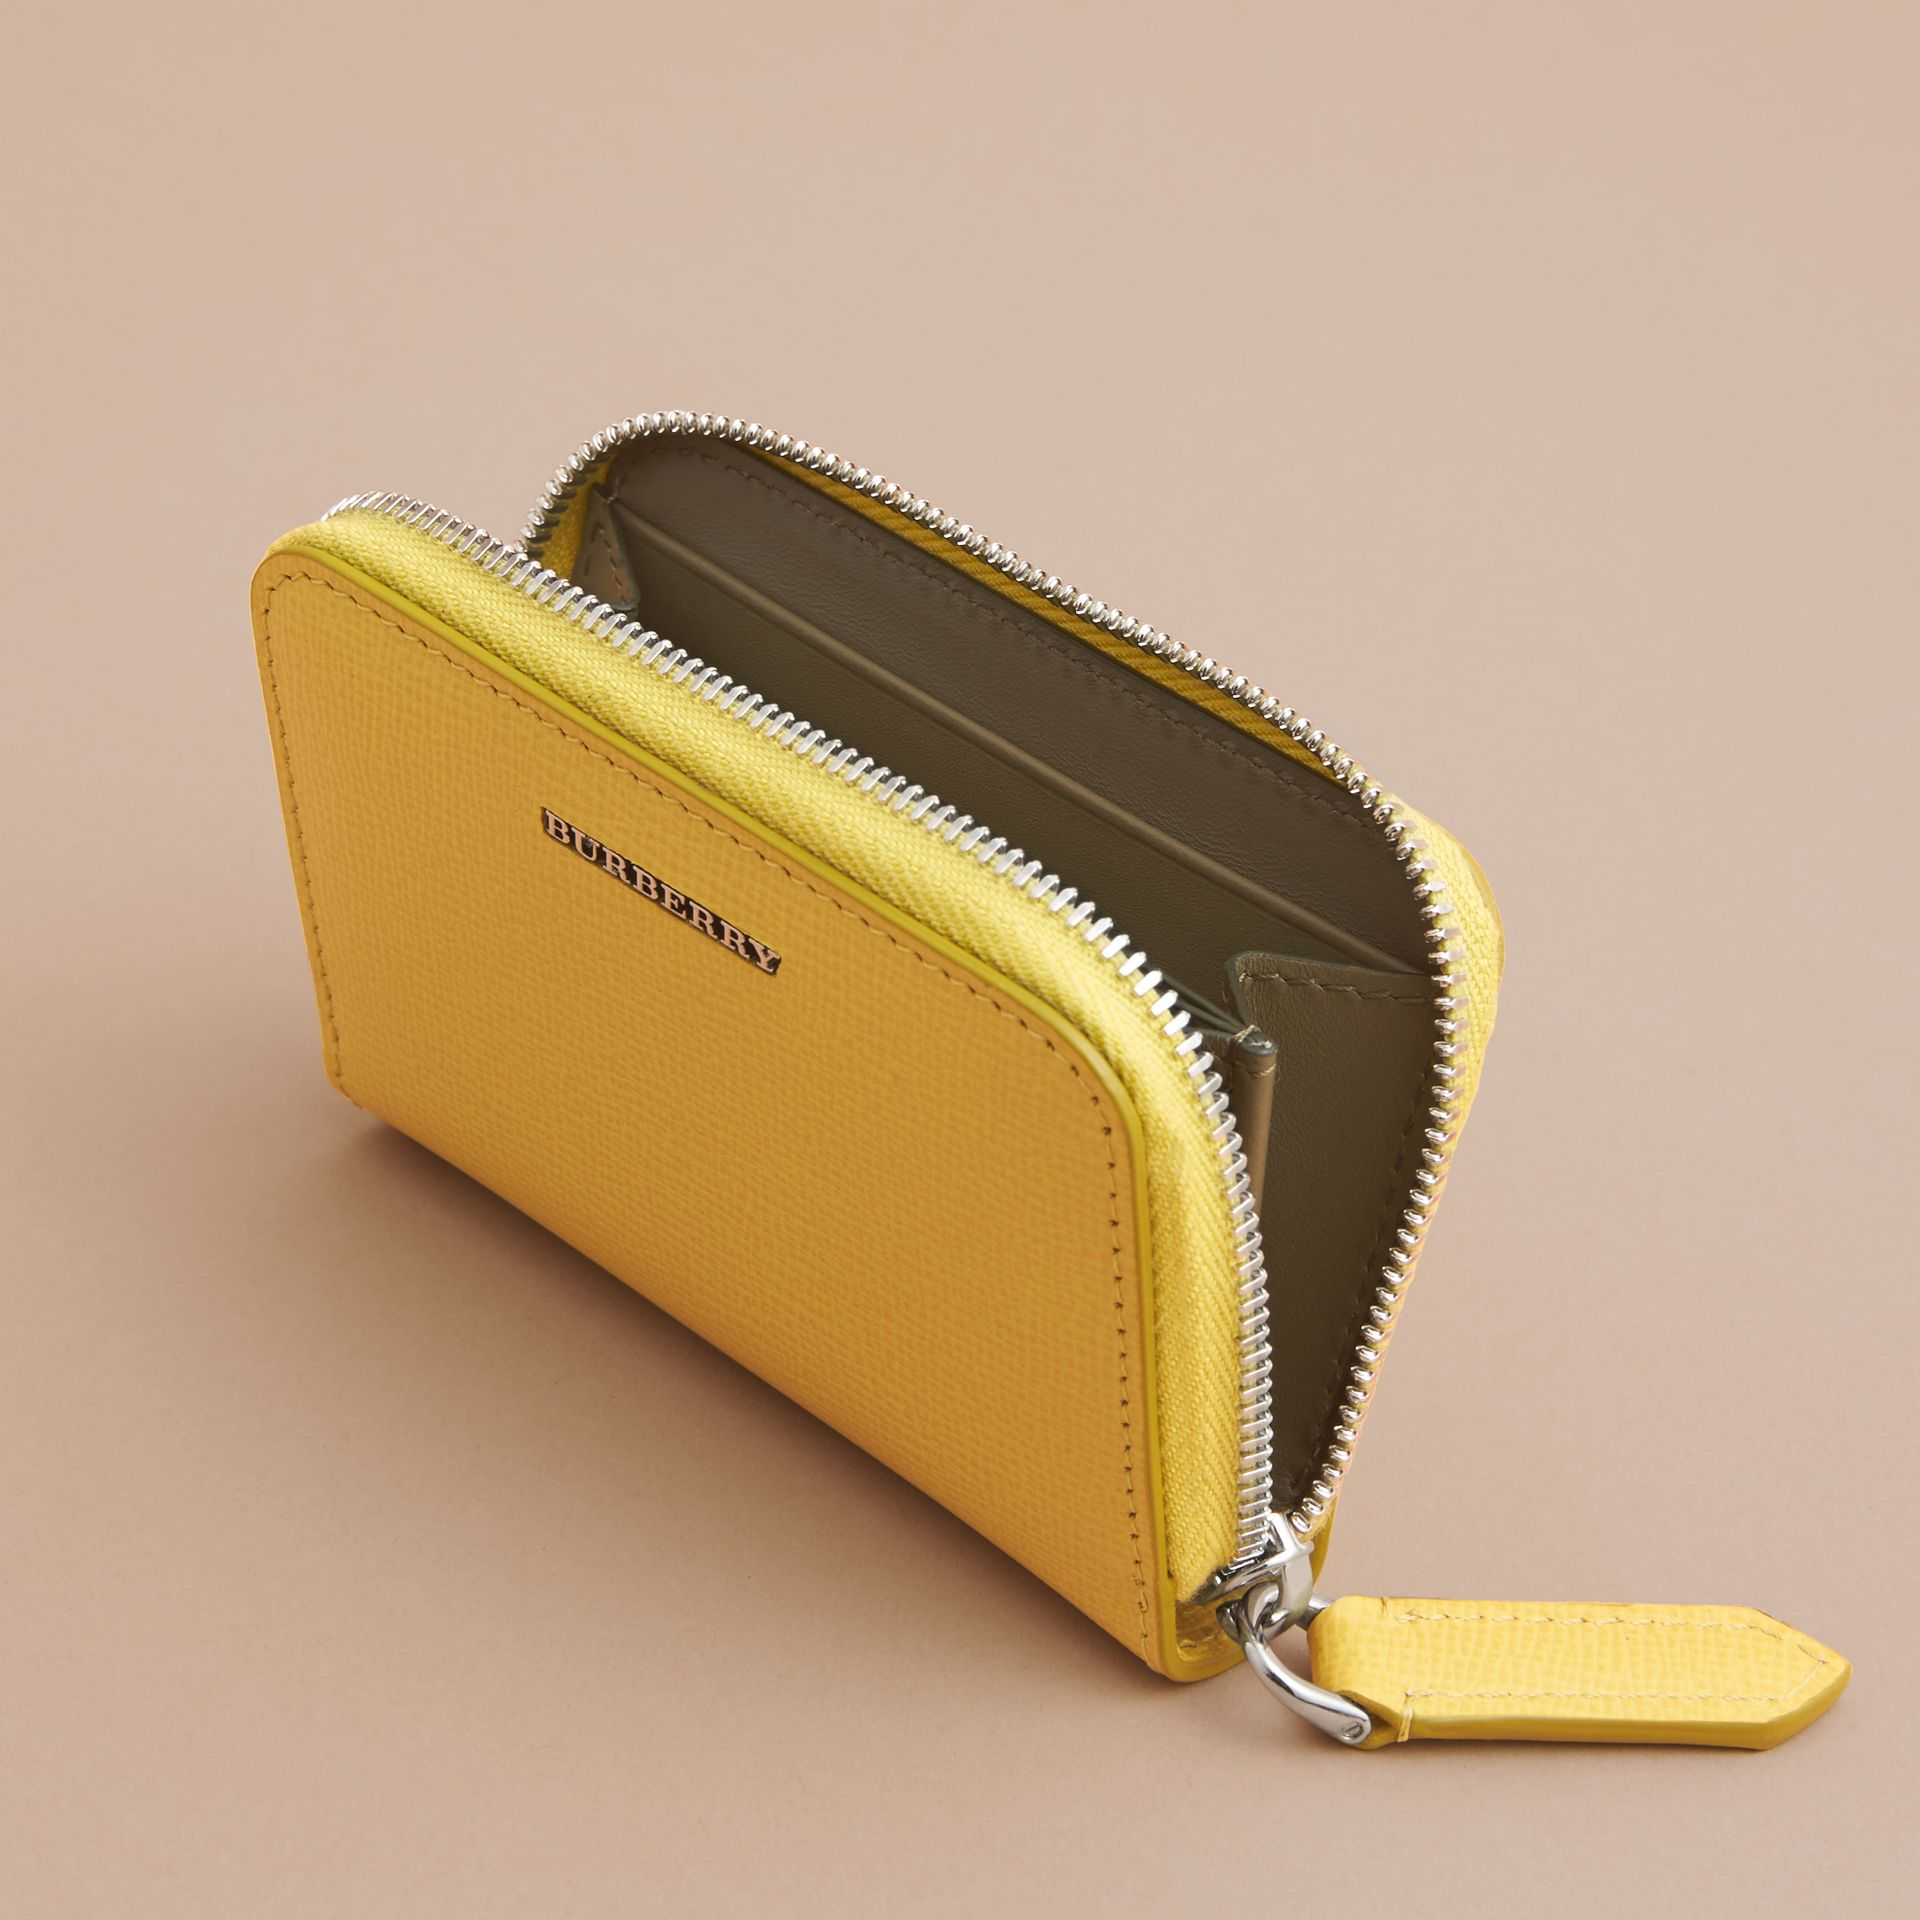 London Leather Ziparound Coin Case in Bright Citrus | Burberry - gallery image 5